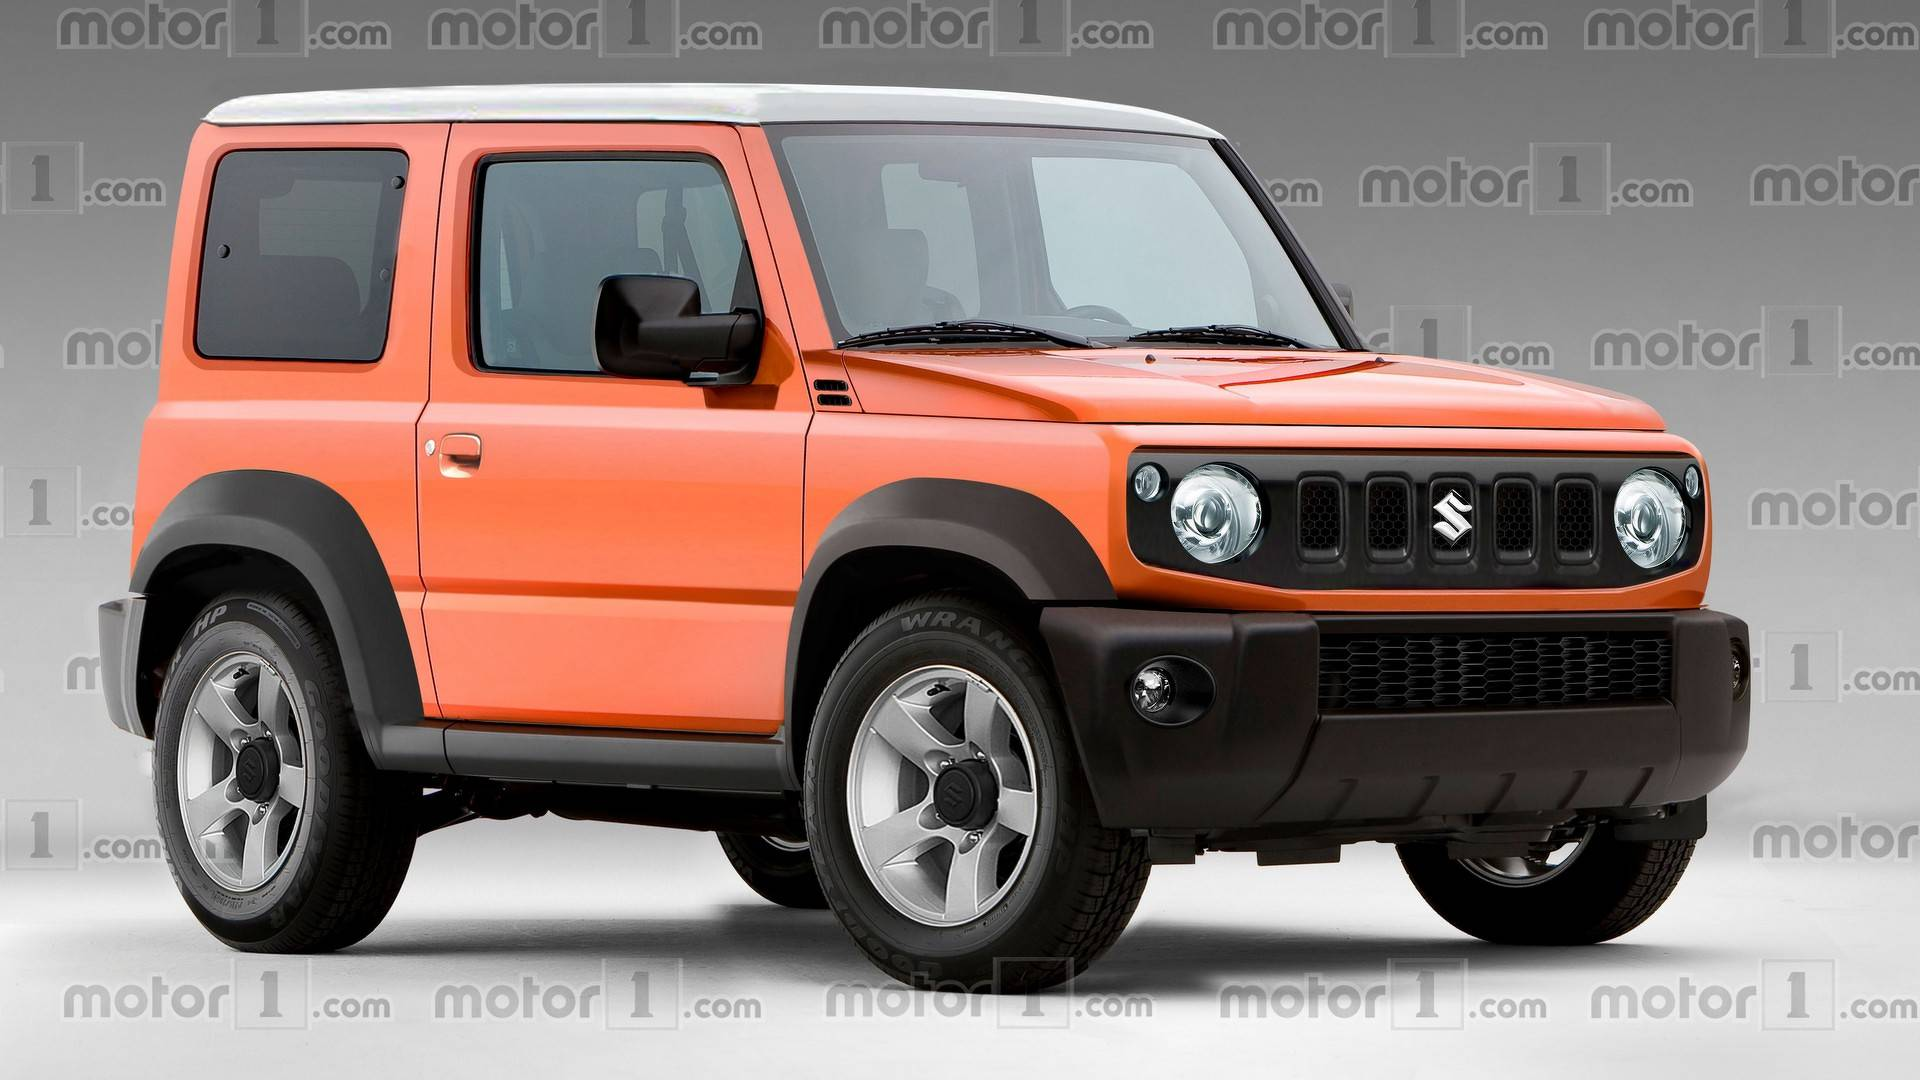 86 A 2020 Suzuki Jimny Exterior and Interior